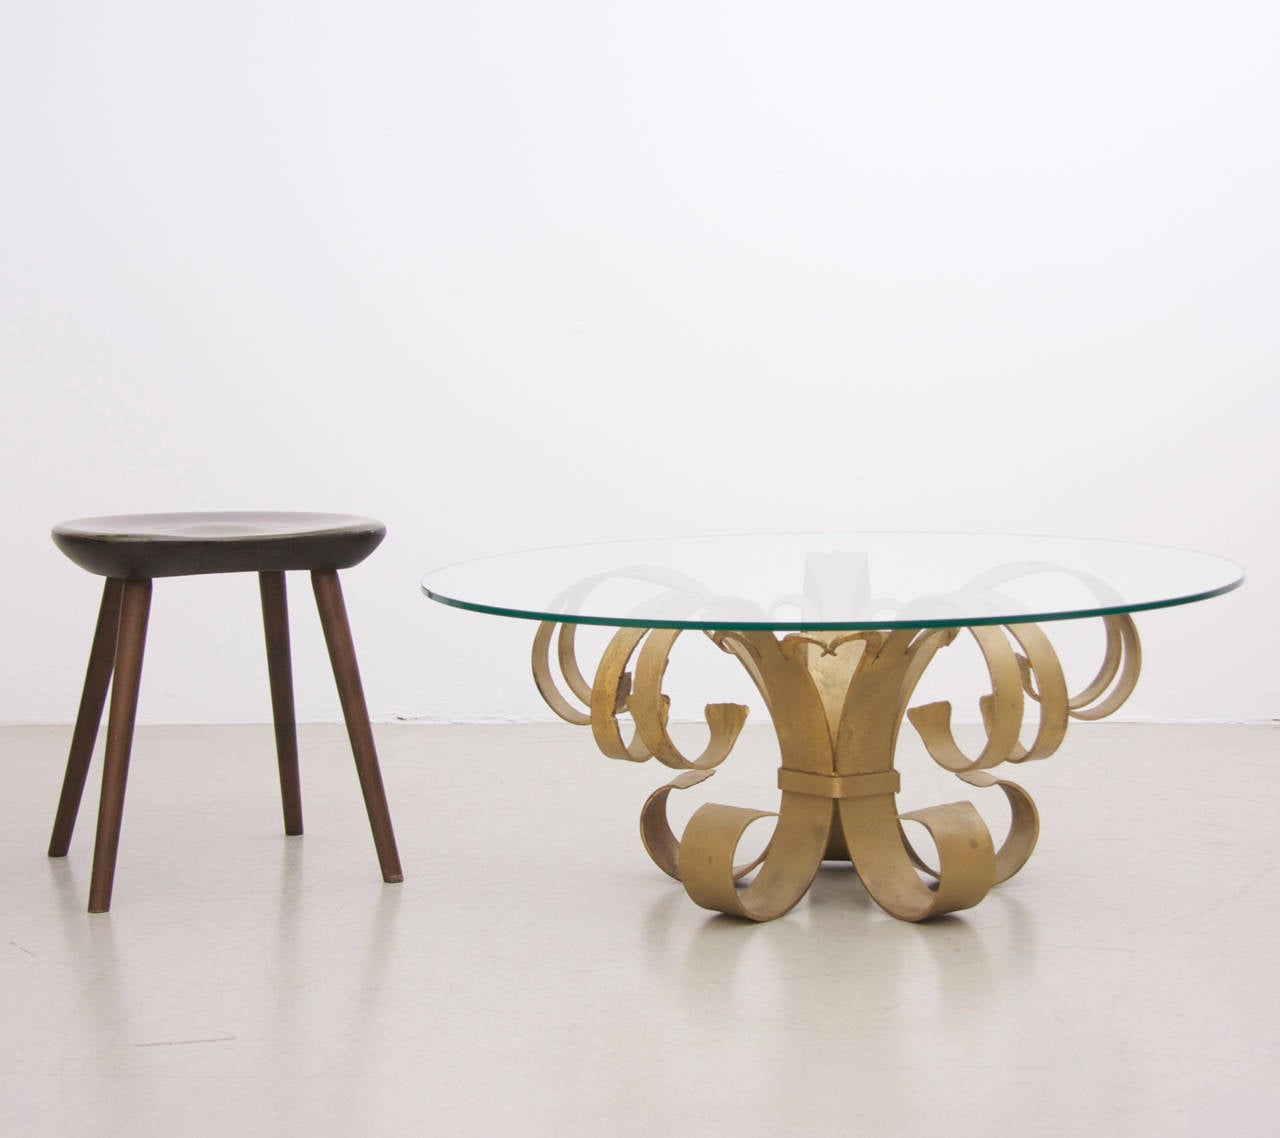 Huge Hollywood Regency Wrought Iron Italian Coffee Table With Glass Top For Sale At 1stdibs